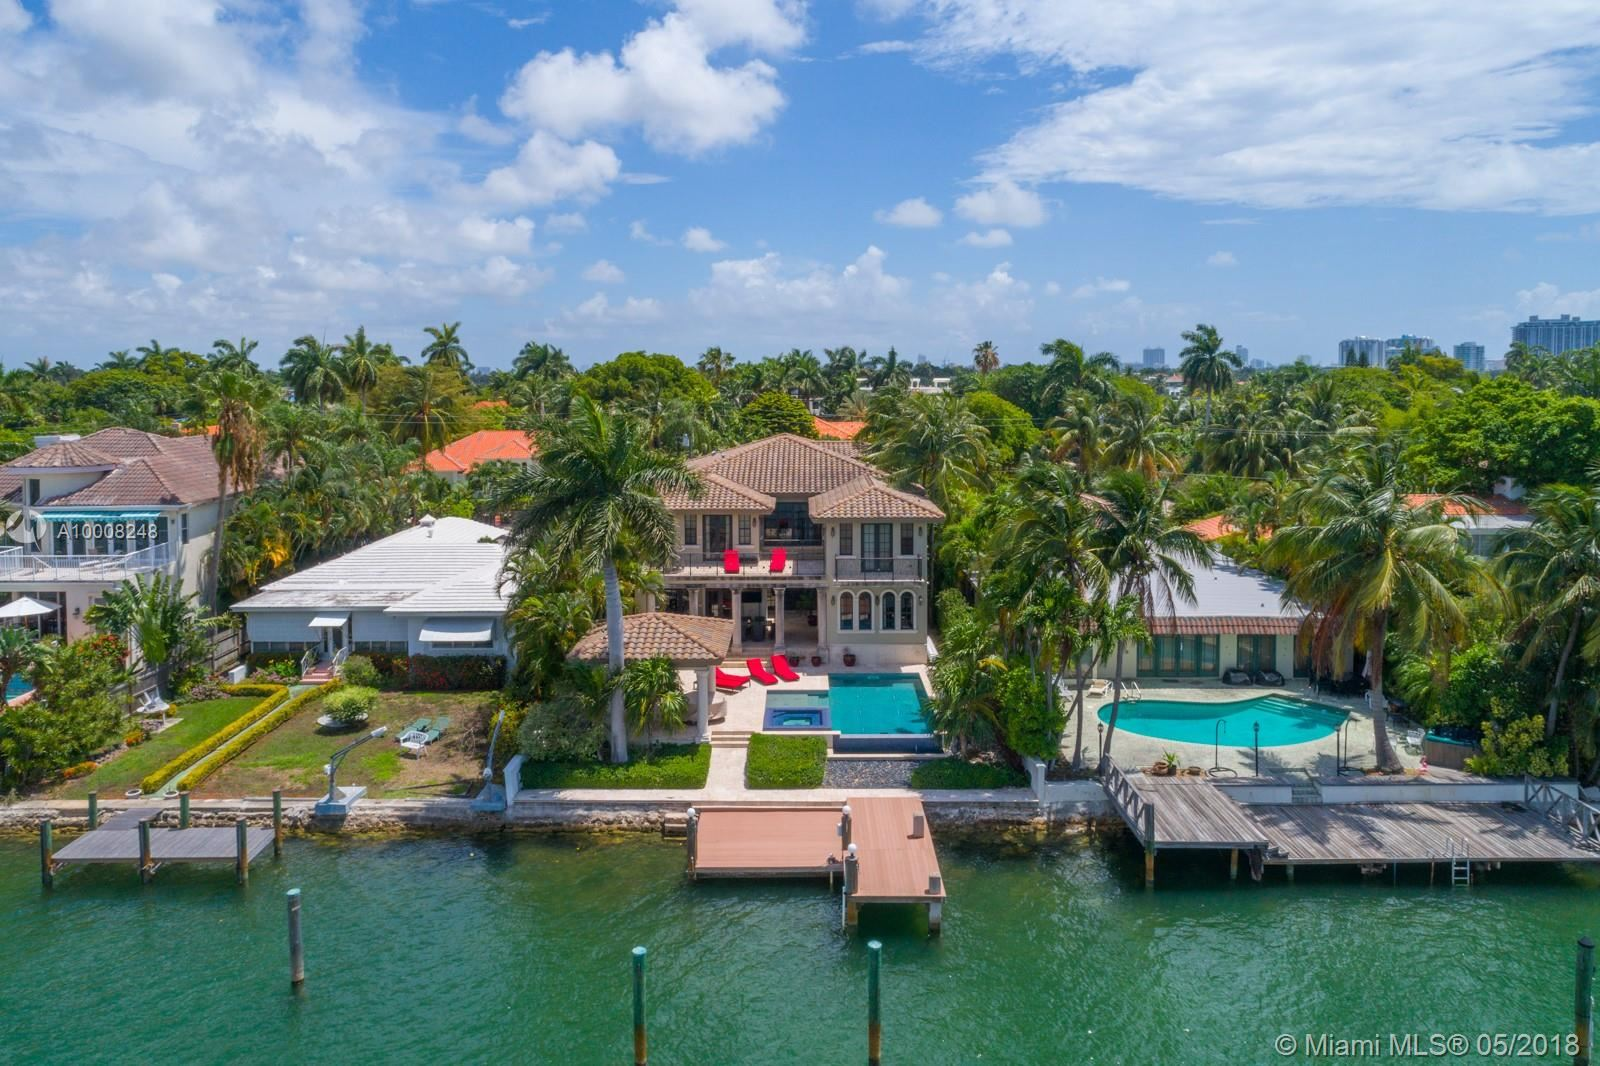 Photo 22 of Listing MLS a10008248 in 280 S HIBISCUS DR Miami Beach FL 33139